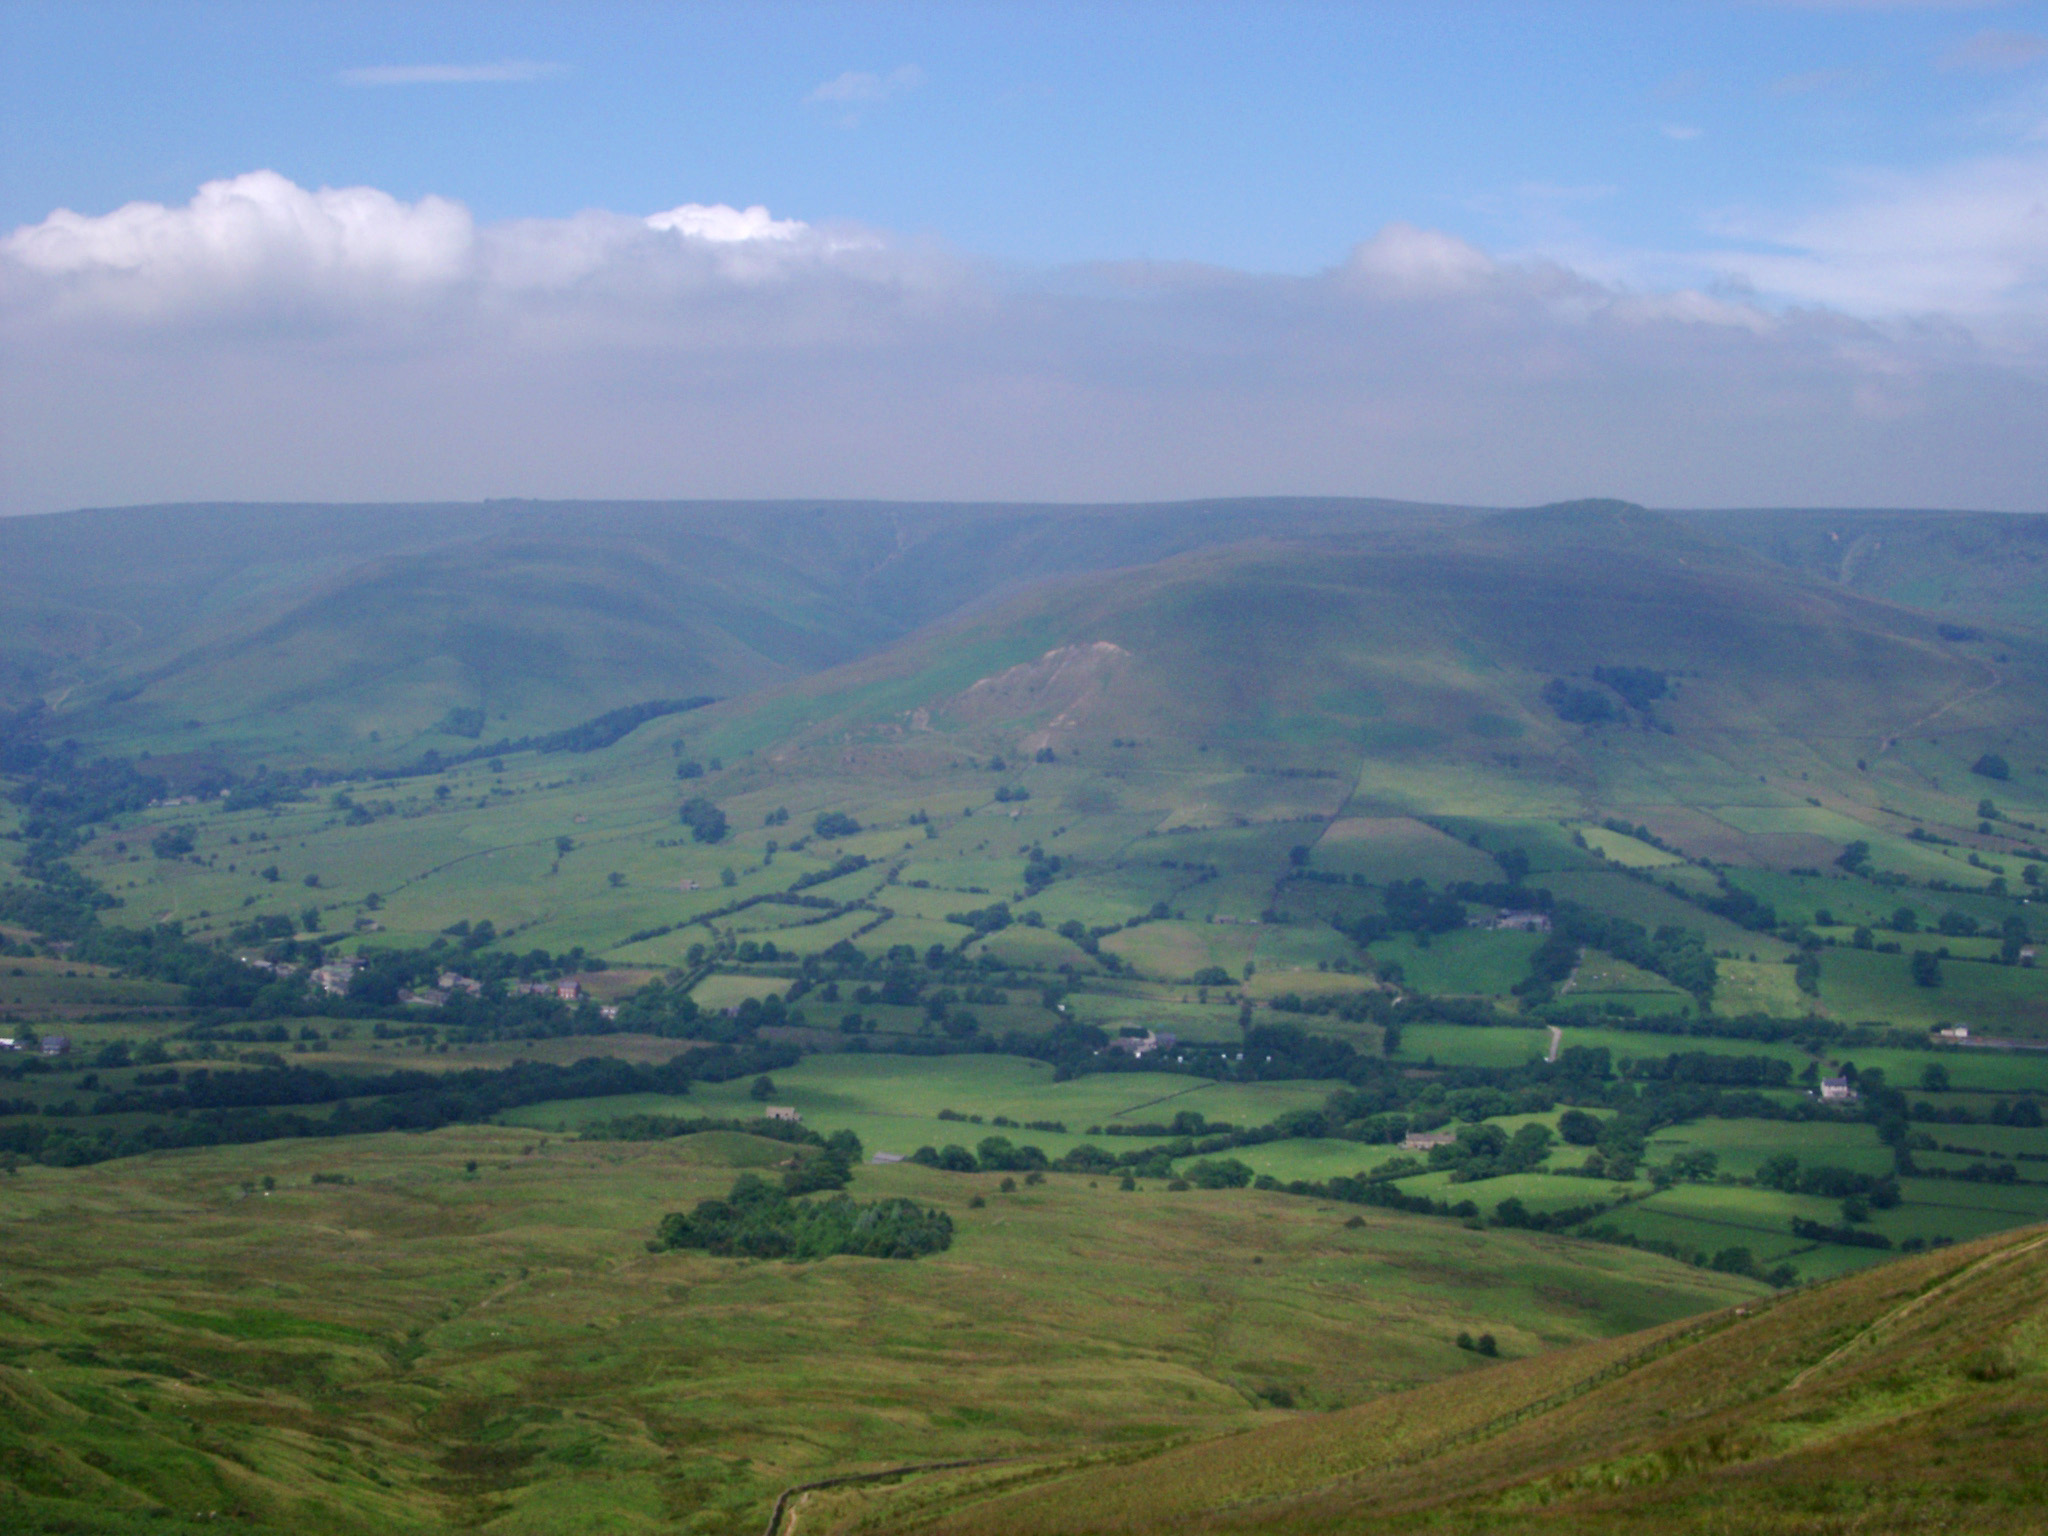 View from Mam Torr to Kinder Scout at Edale with a lush green scenic panorama across rolling hills to the plateau, Derbyshire, UK